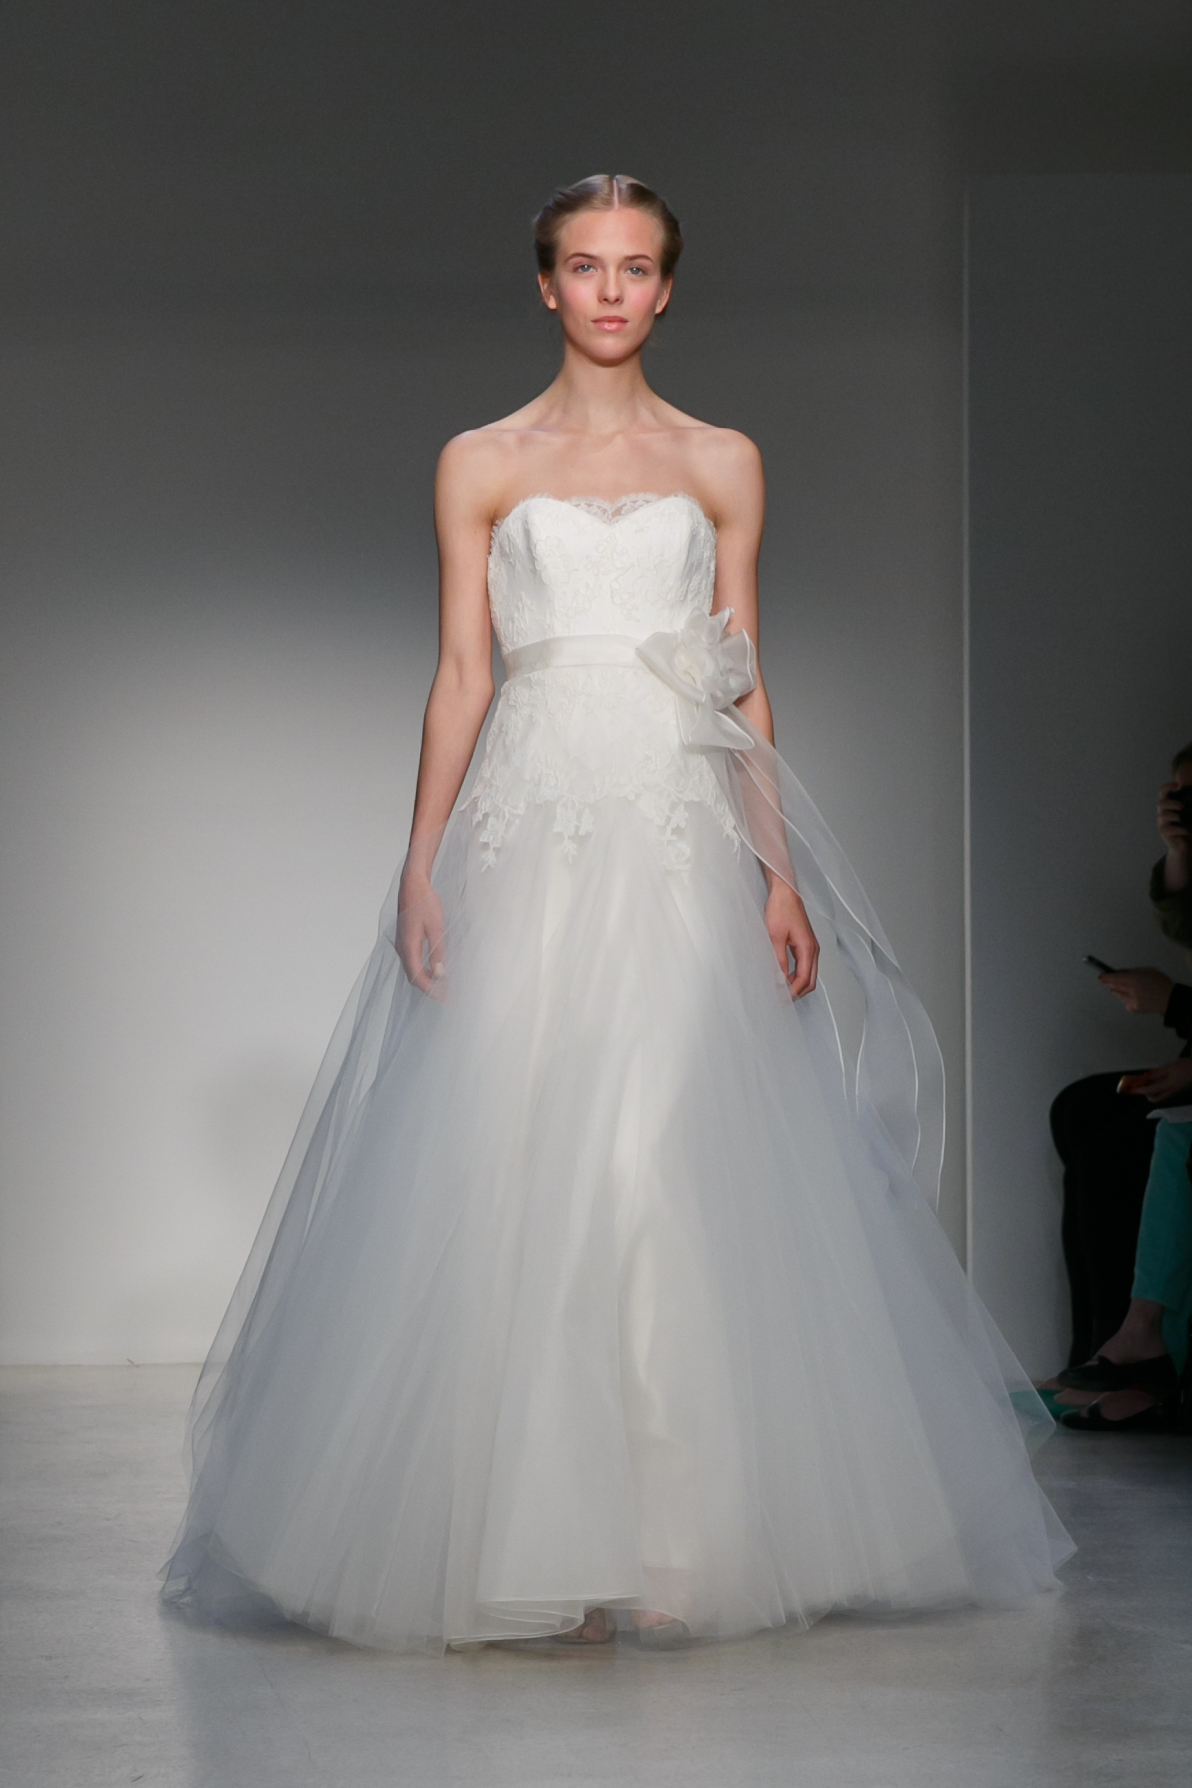 Fall-2013-wedding-dress-by-christos-amsale-bridal-5.original